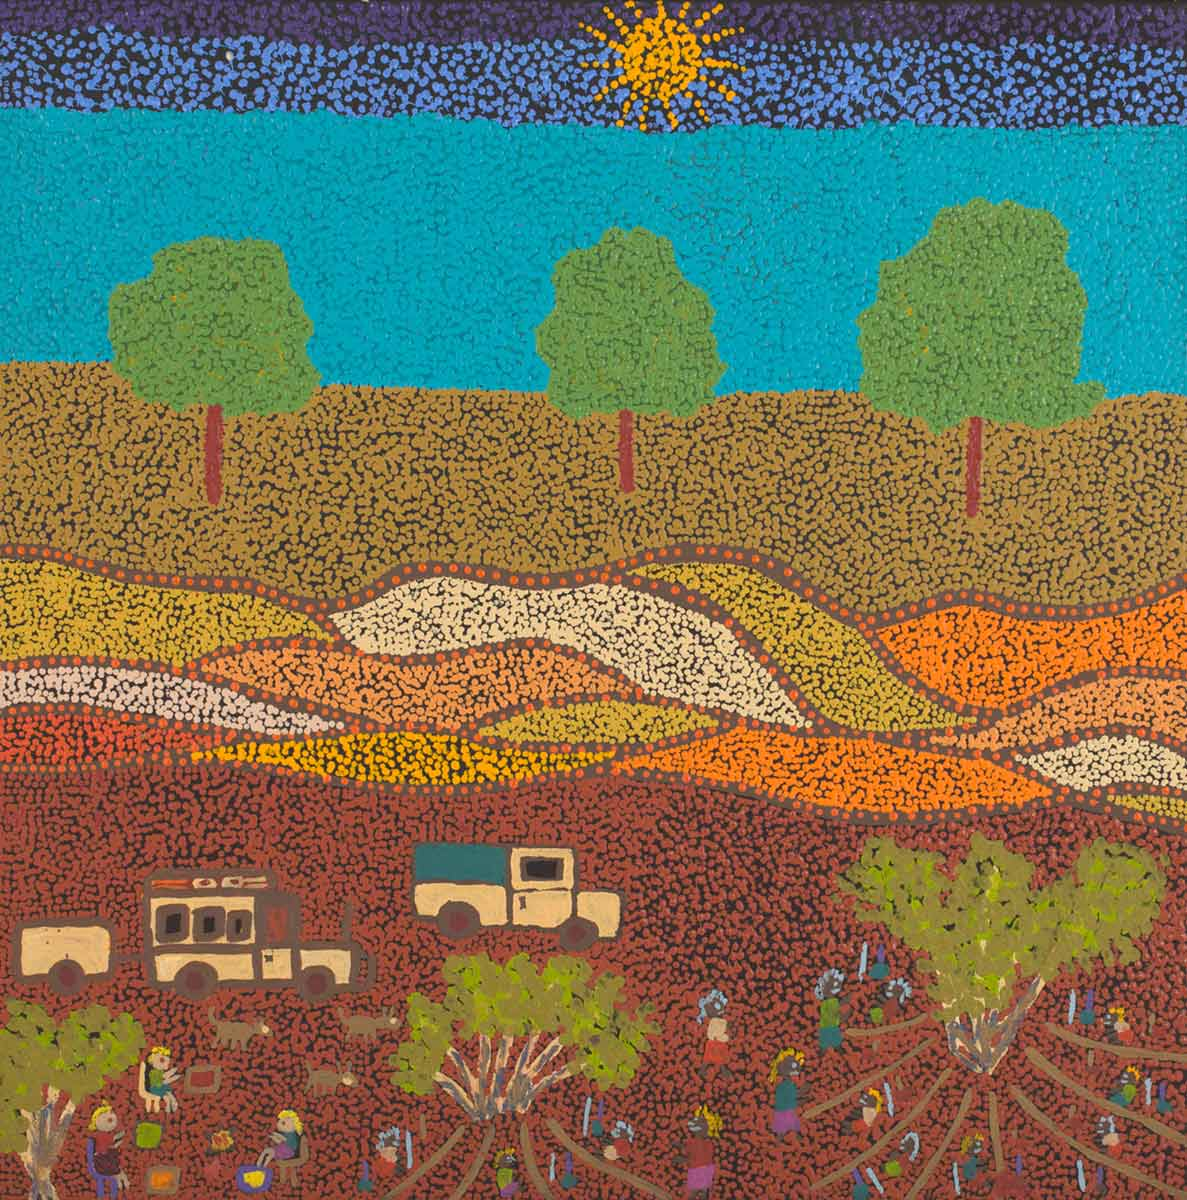 An acrylic painting on canvas showing a landscape with a sun and three trees above a scene of two vehicles and groups of people. - click to view larger image